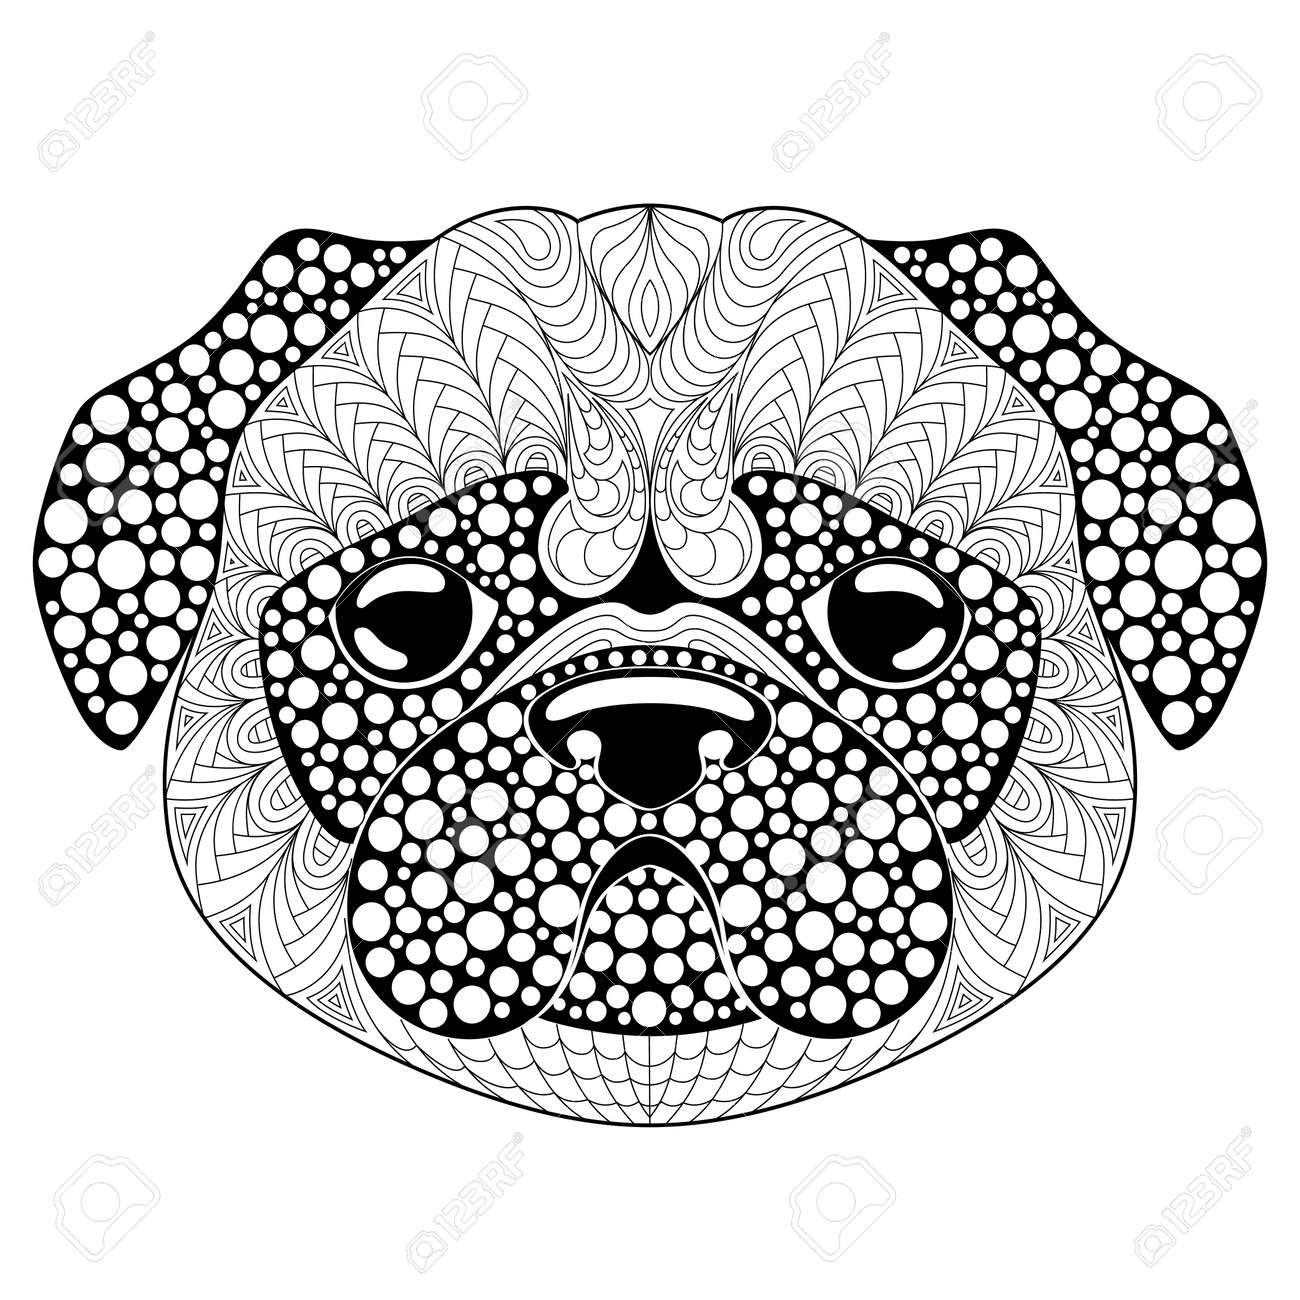 Pug Dog Head. Tattoo Or Adult Antistress Coloring Page. Black And White  Hand Drawn